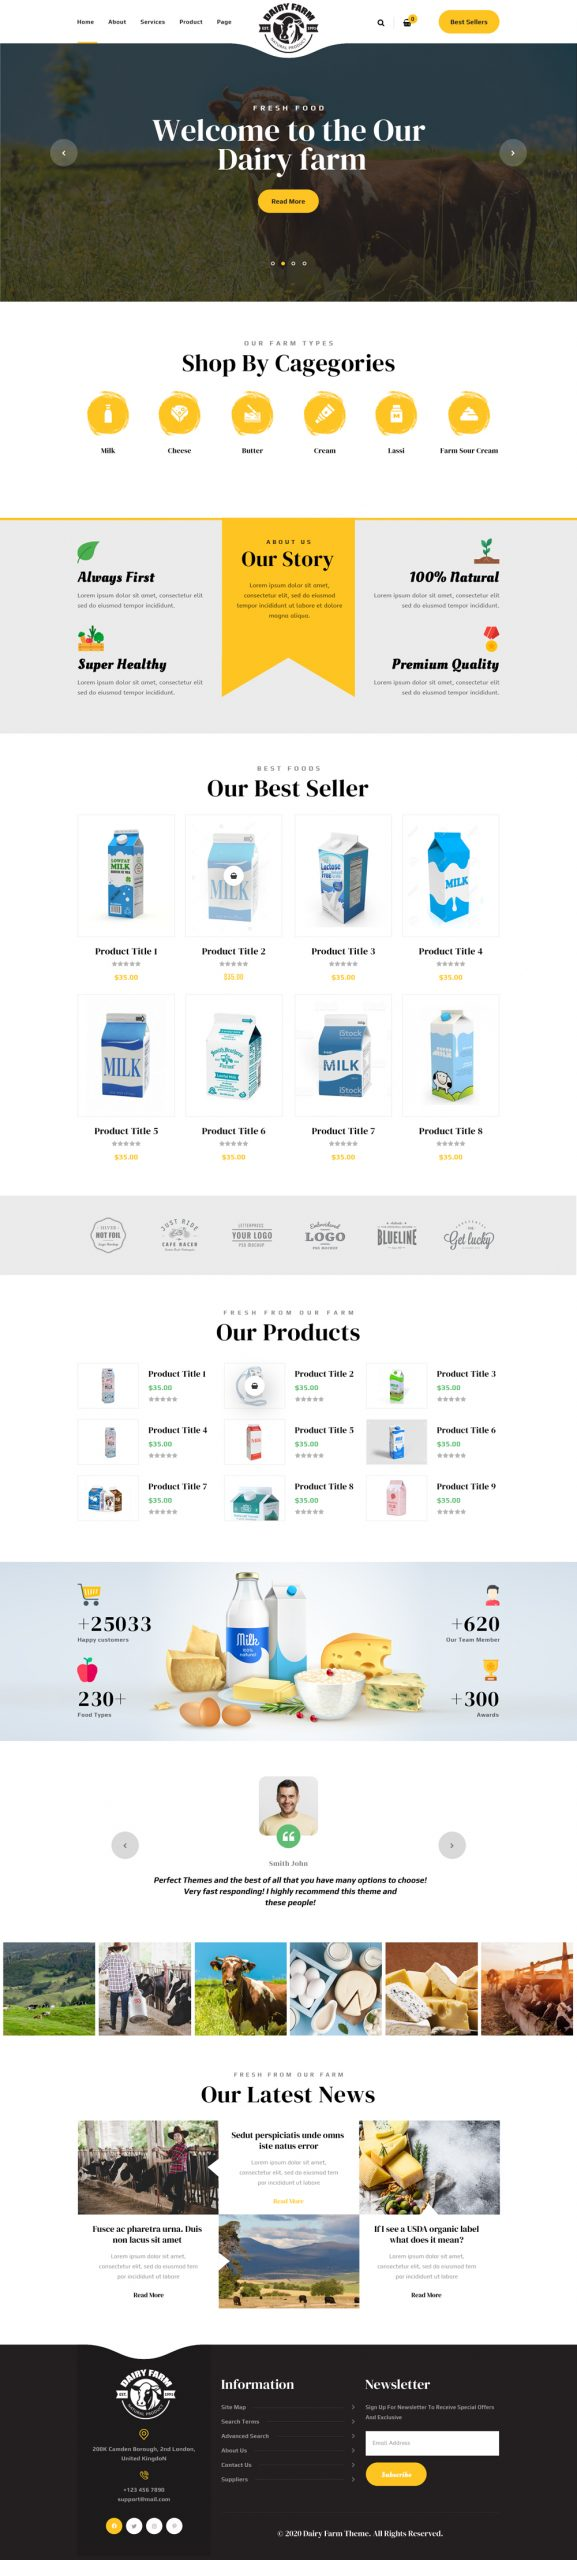 Dairy Farm WordPress Theme